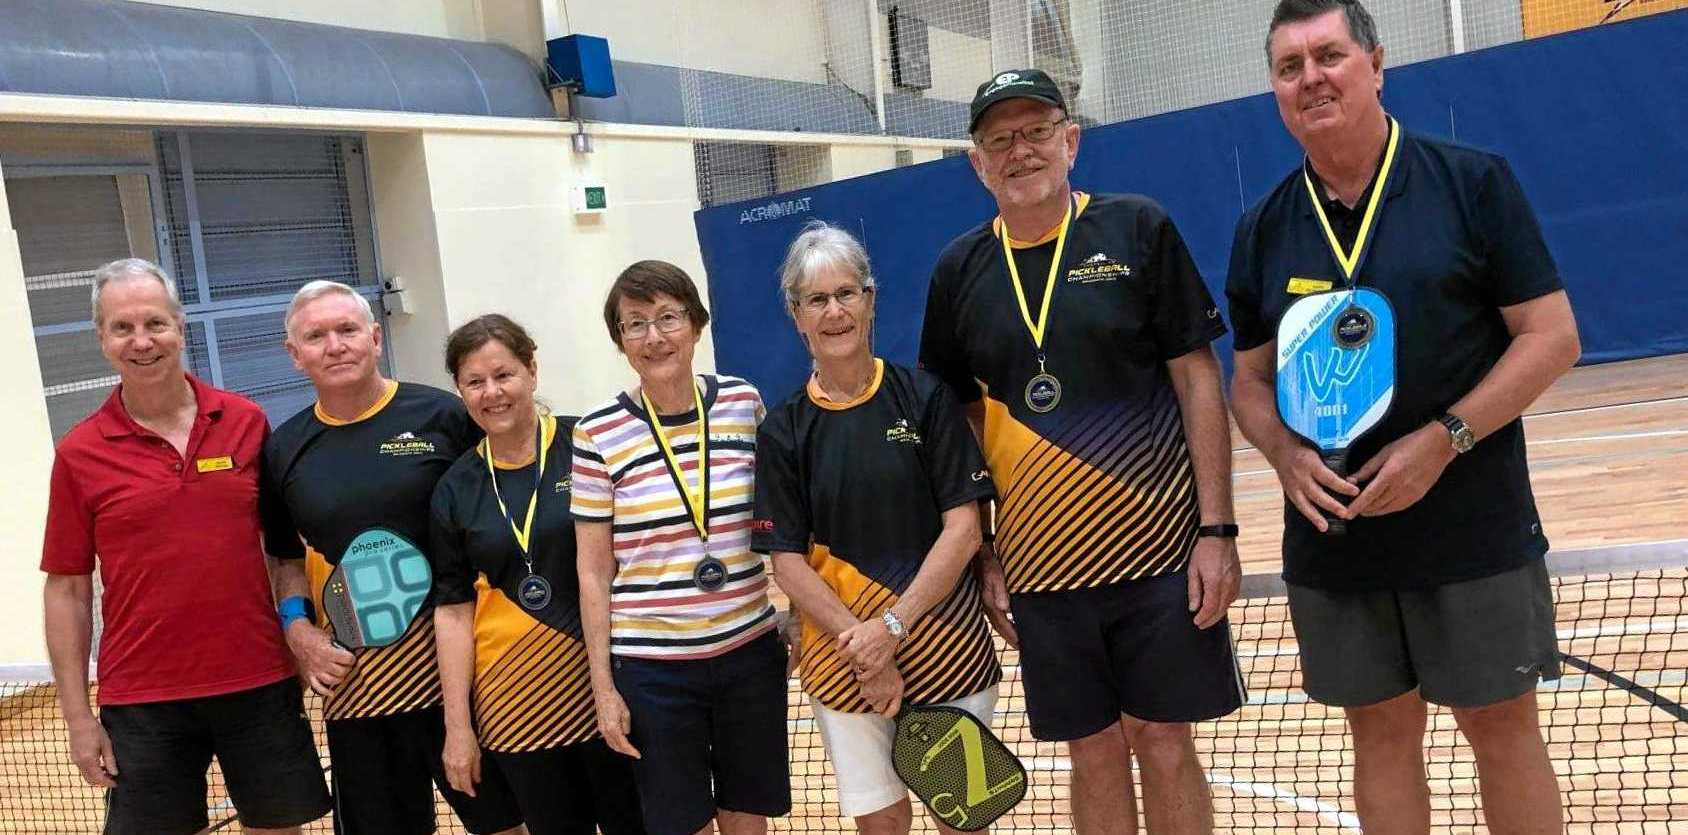 U3A Sunshine Coast's first Pickleball champions - Peter Deacon, Michael Drummond, Roslyn Smart, Lesley Seto, Sandee Leslie, Bruce Winther (U3A  Pickleball coach), and Gary Petterson  competed in the National Championships held recently in Brisbane, and some achieved silver and gold medals.